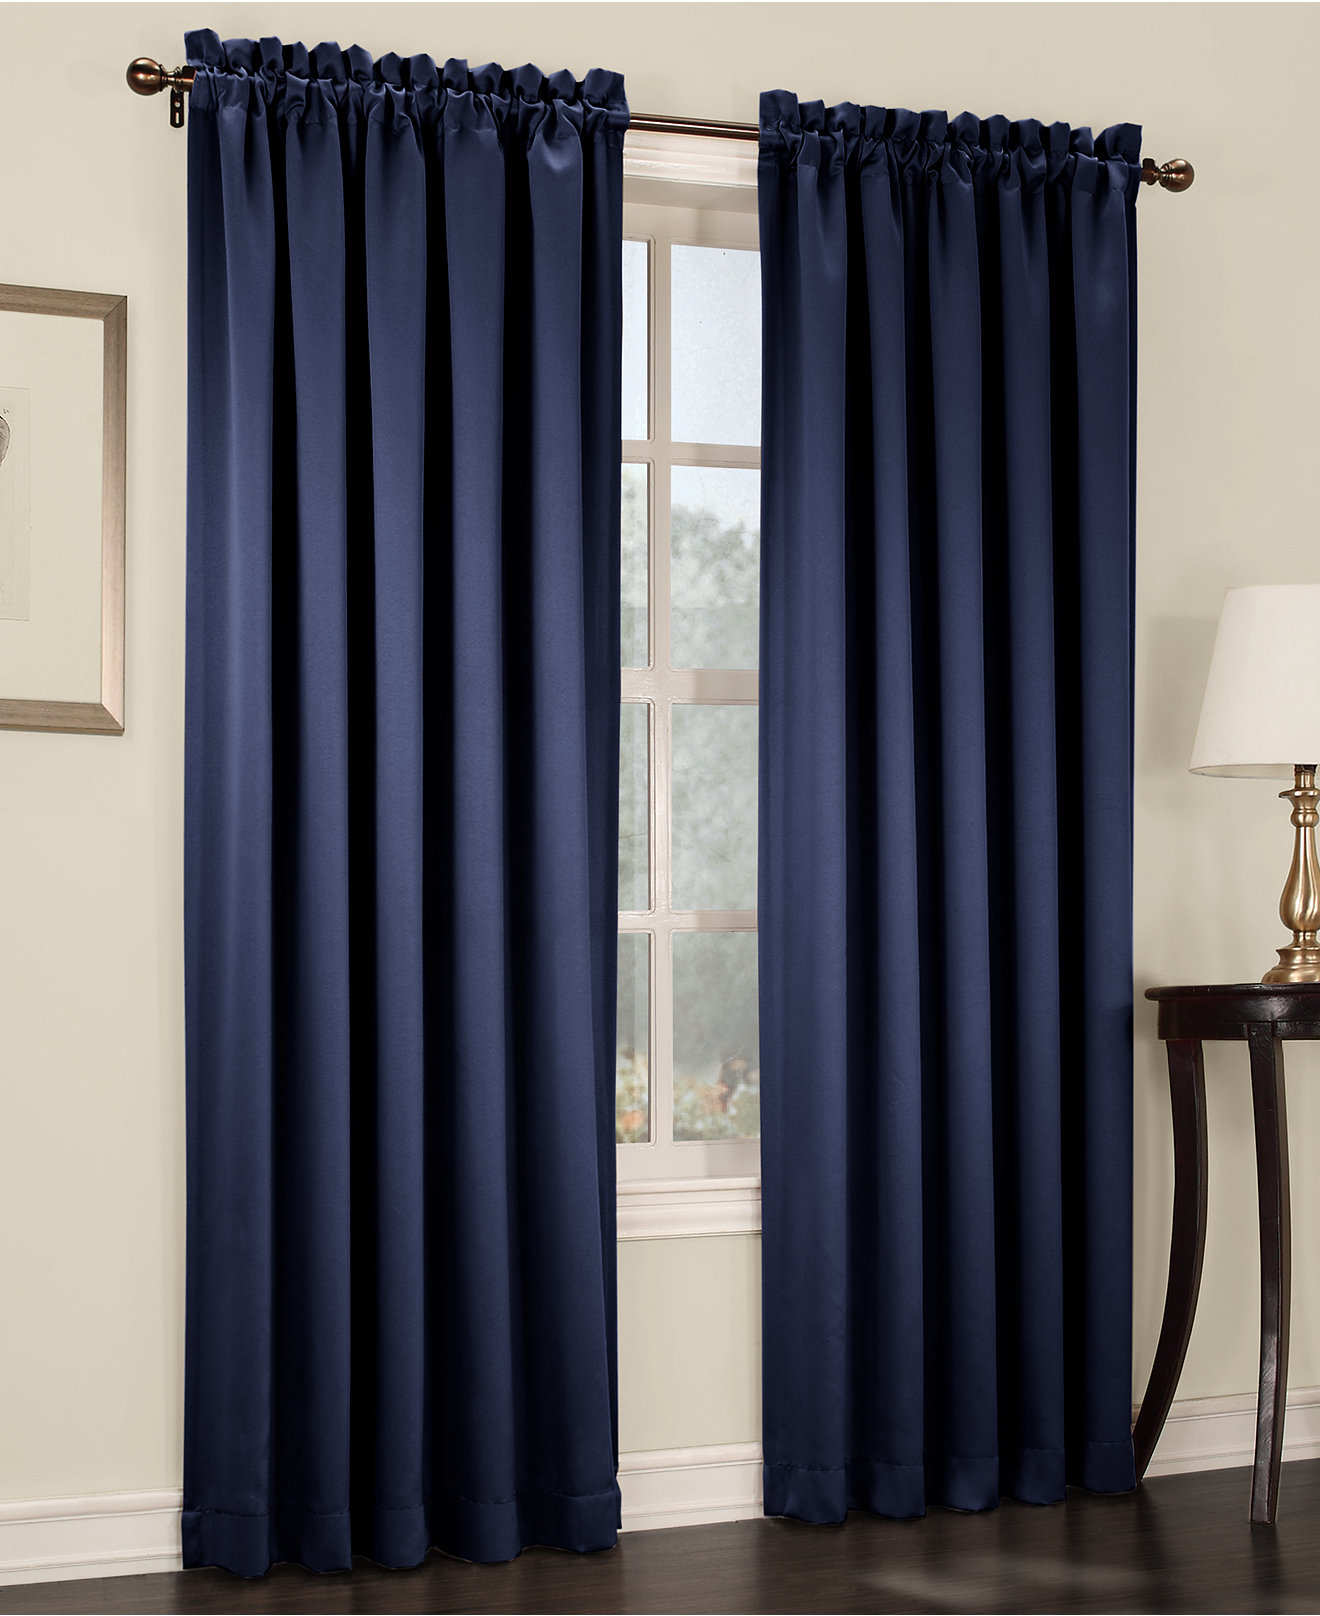 Sun Zero Grant Solid Room Darkening Poletop Window Treatment Collection